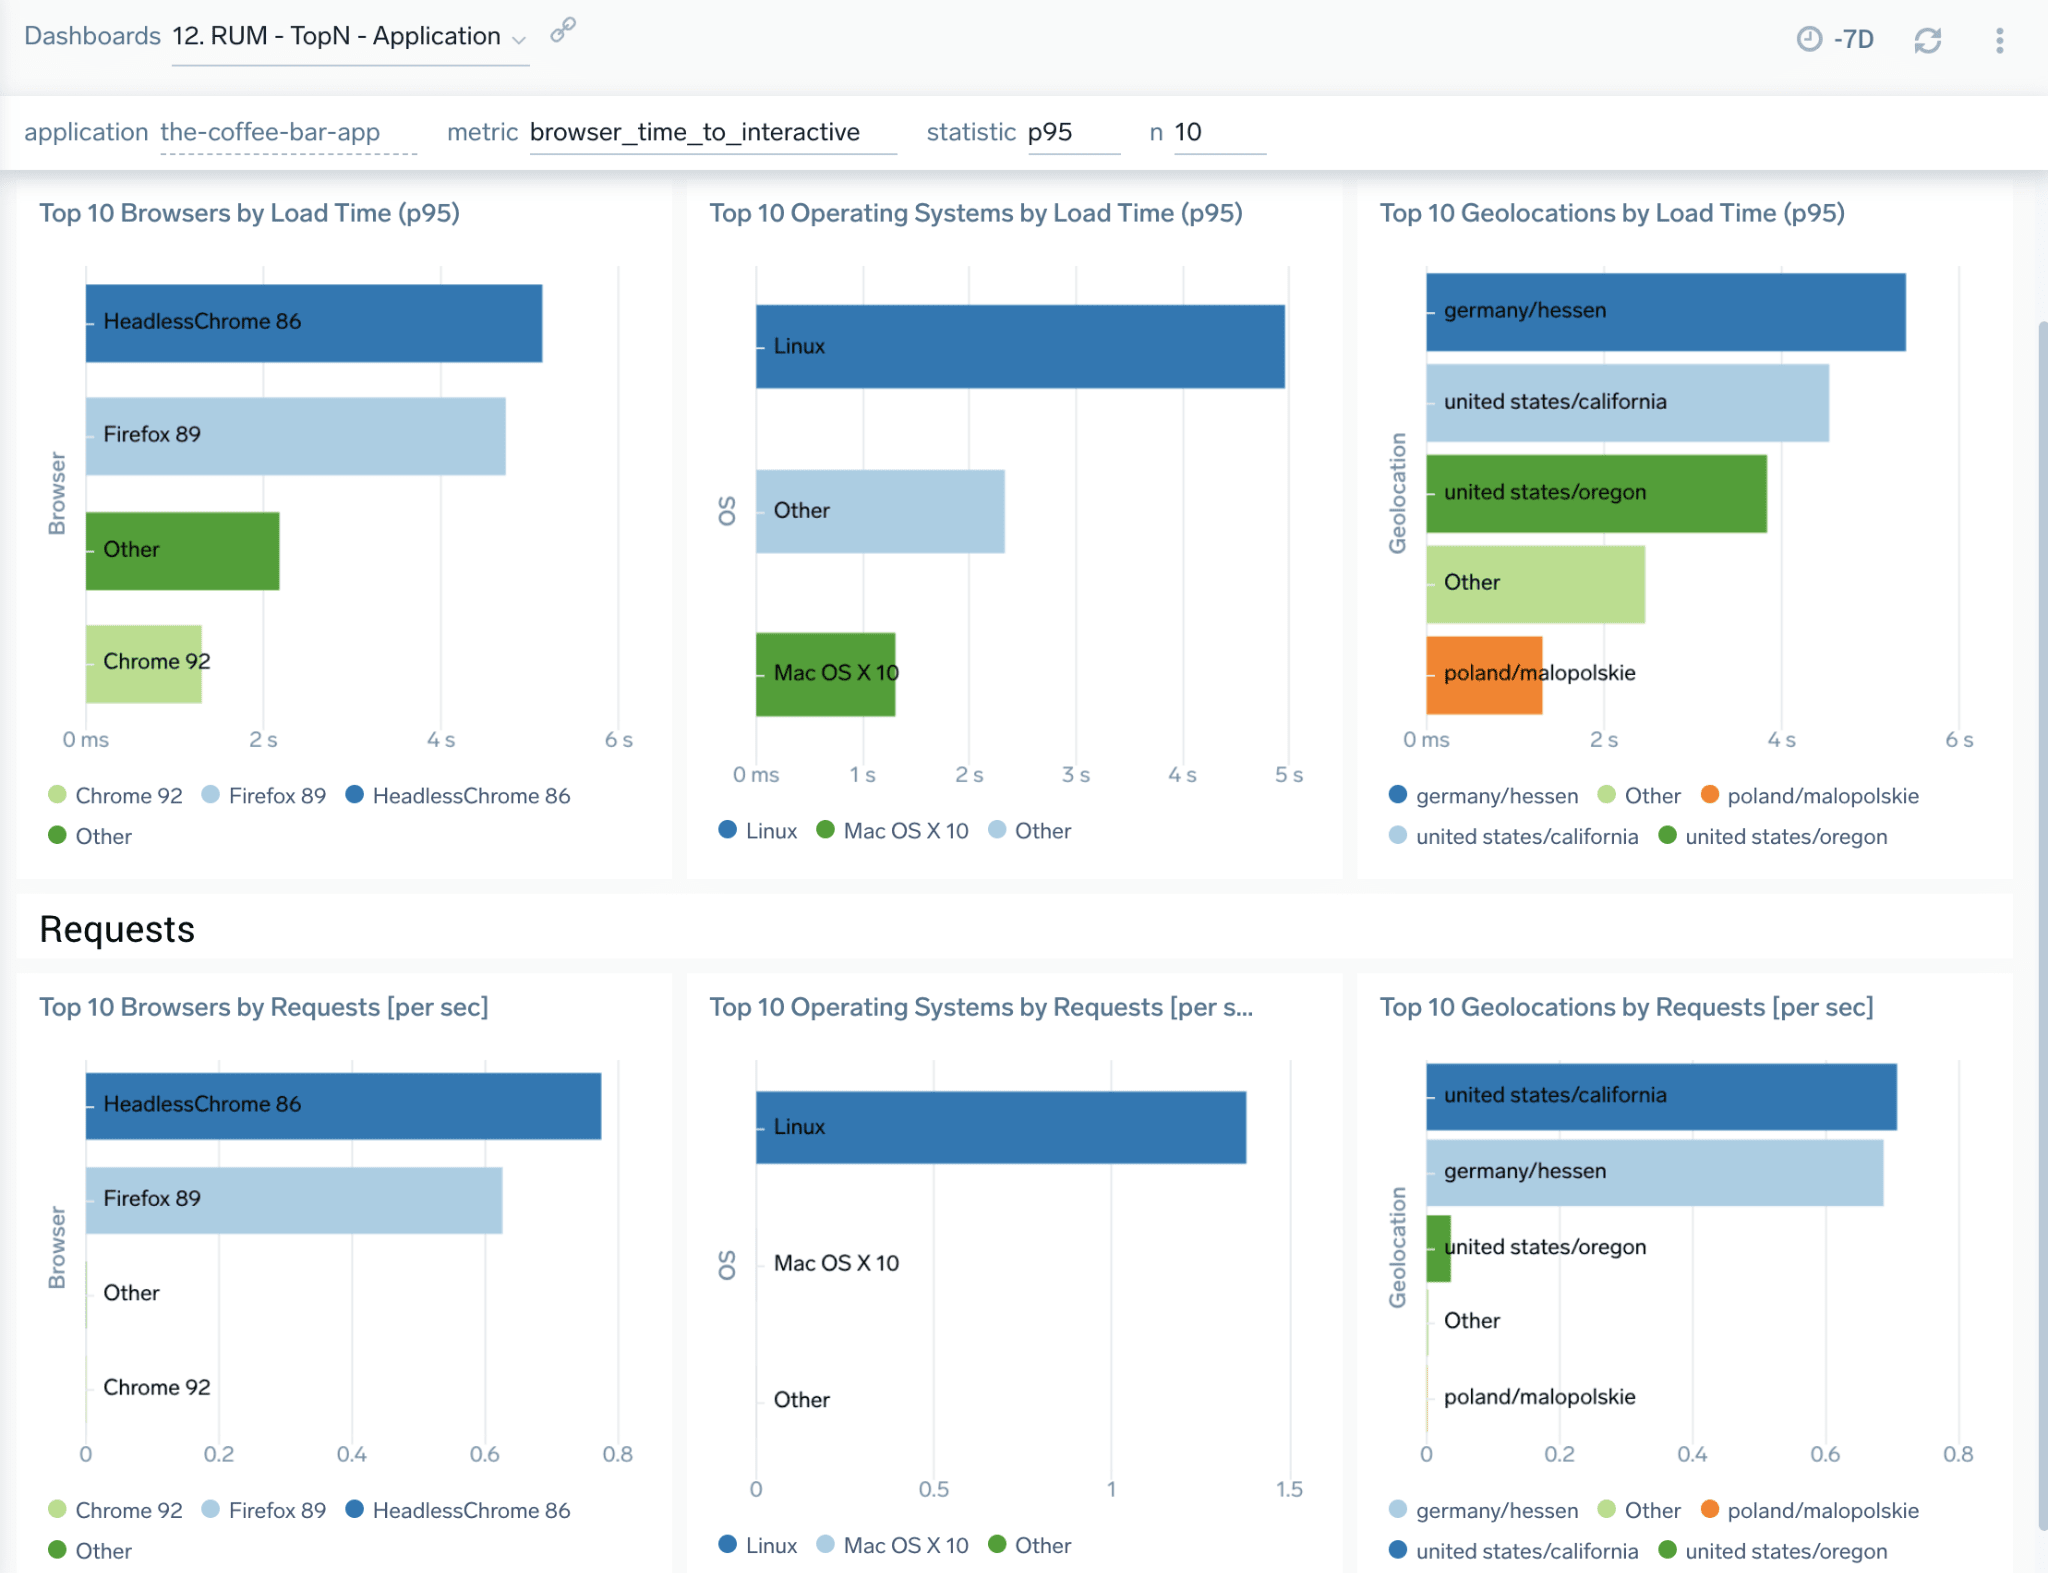 Sumo Logic completes full stack observability with Real User Monitoring capabilities